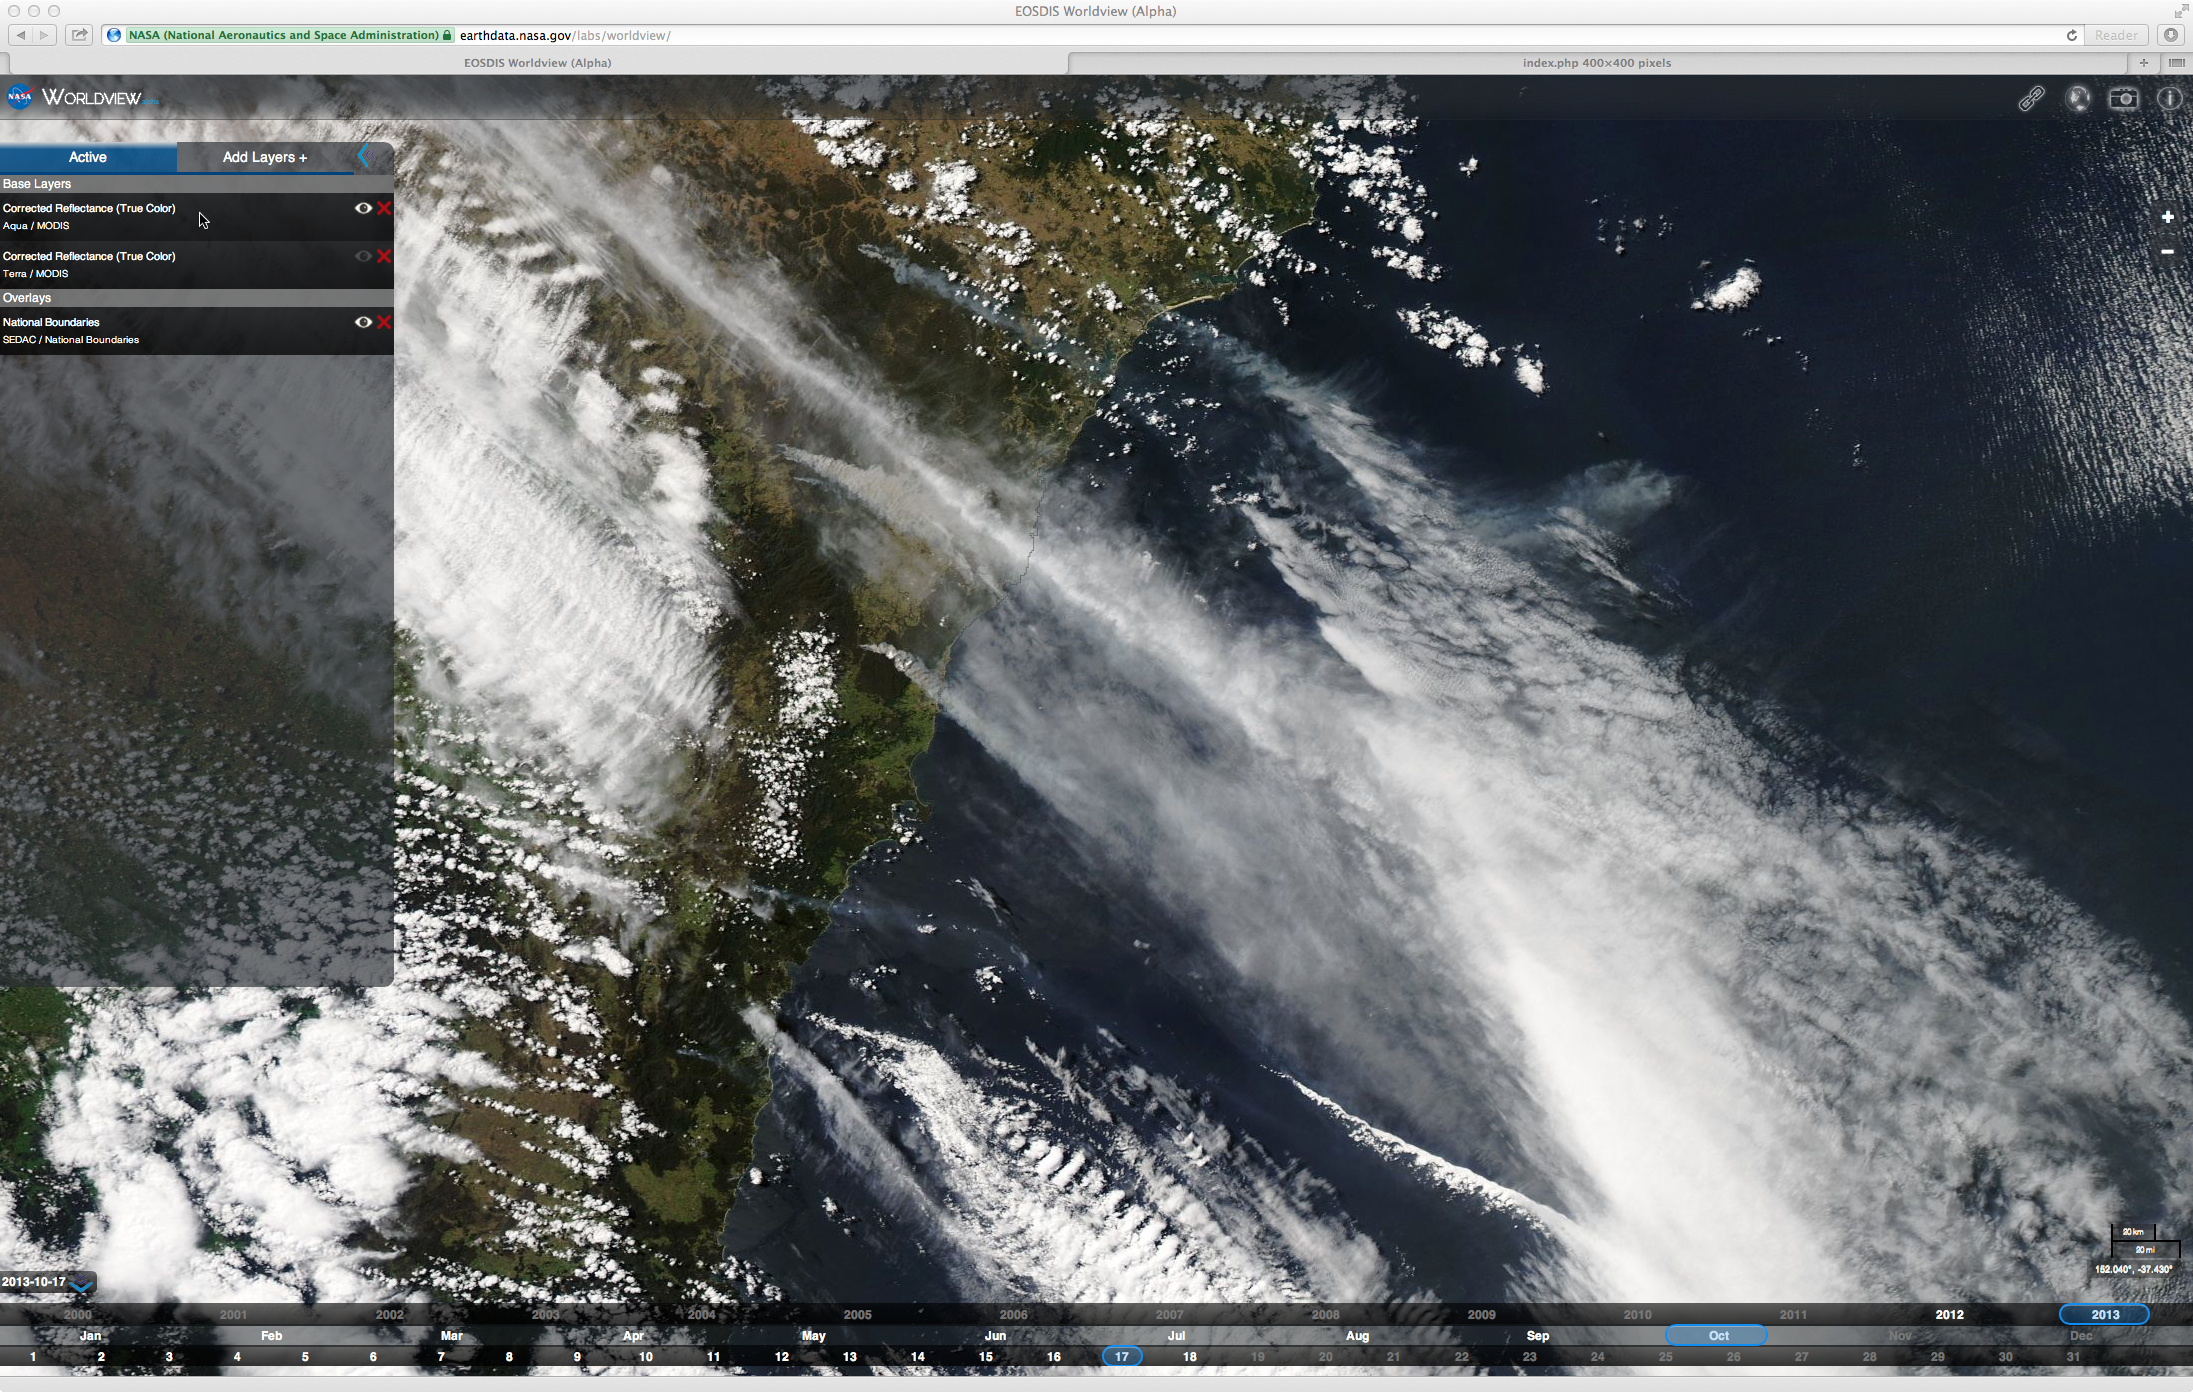 Aqua MODIS true color image